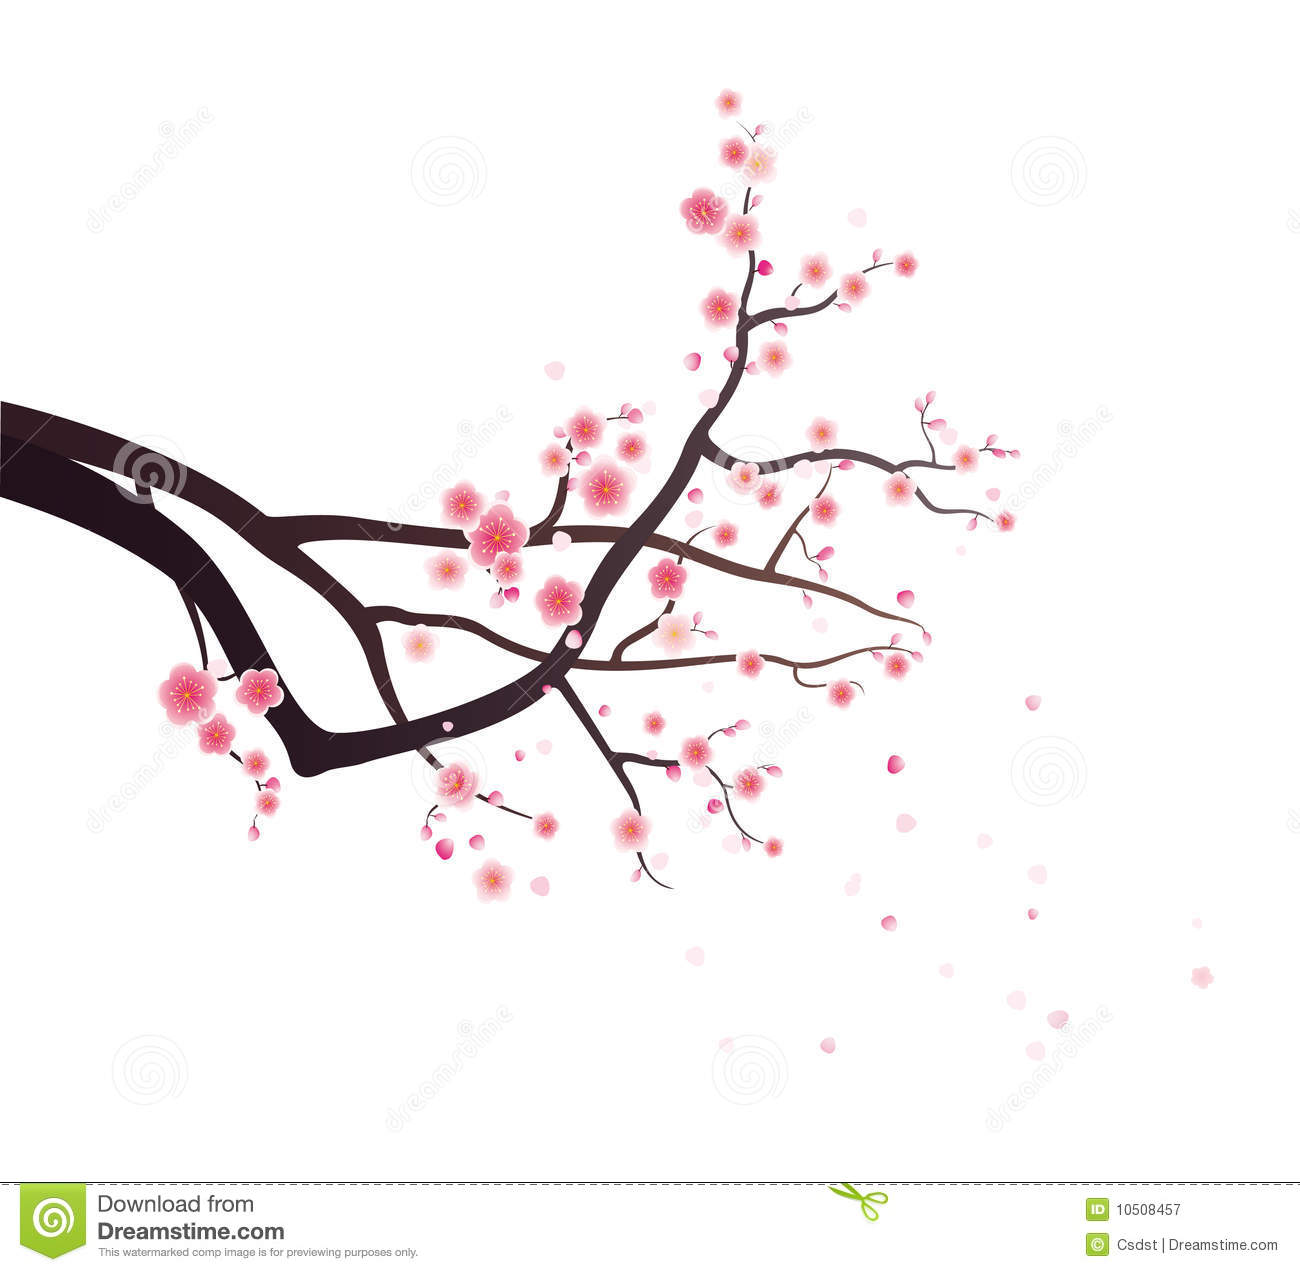 An illustration of a tree branch with plum blossoms and blowing petals ...